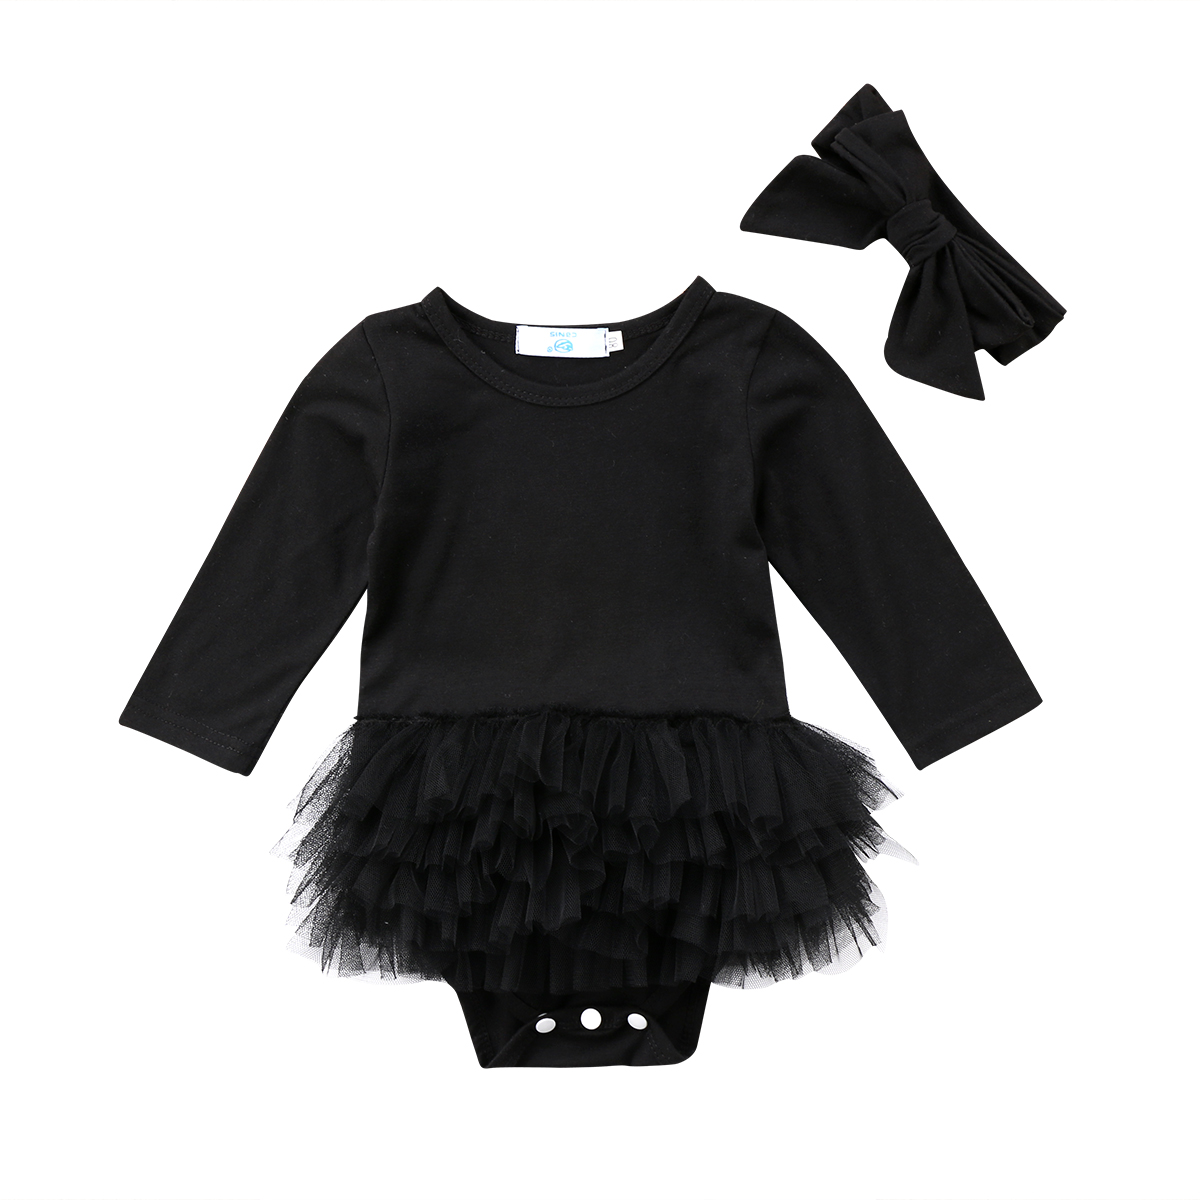 Infant Newborn Baby Girls   Romper   Black Lace Tutu Jumpsuit Outfit Clothes baby Clothing